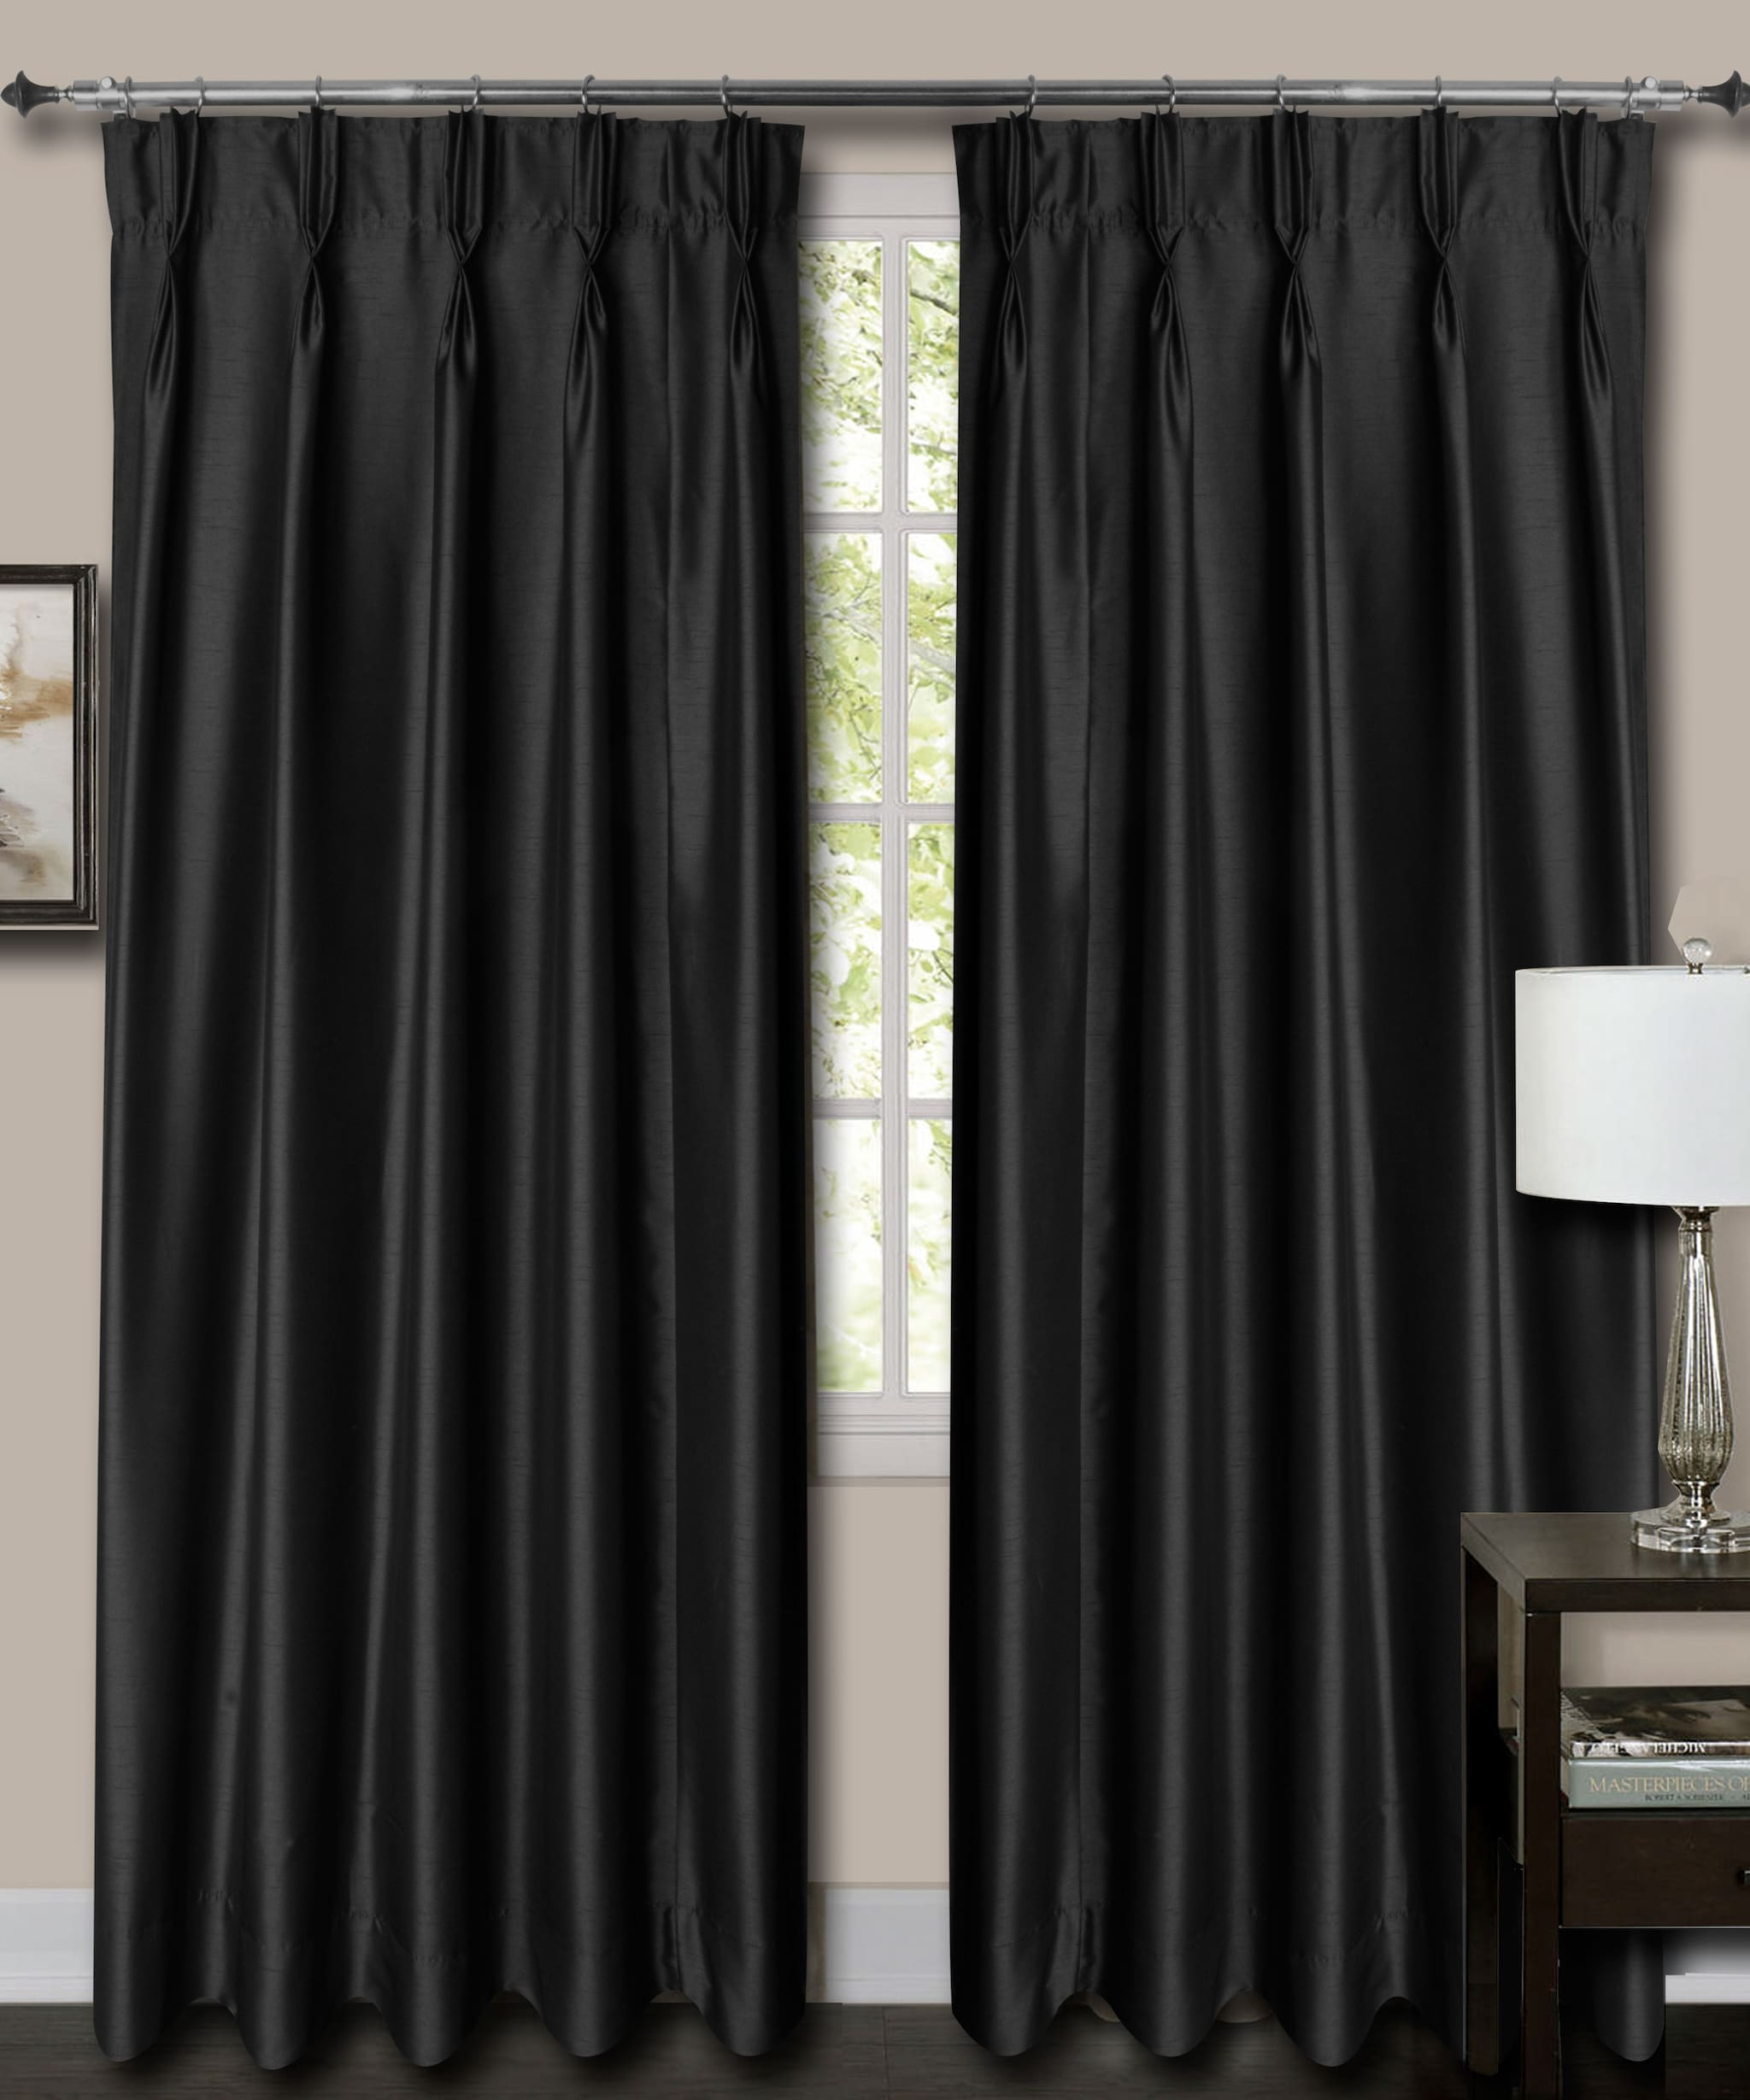 "French Pleat Top Black Faux Silk Dupioni Curtains. (78"" Wide,14 Feet Long,Without Lining)"